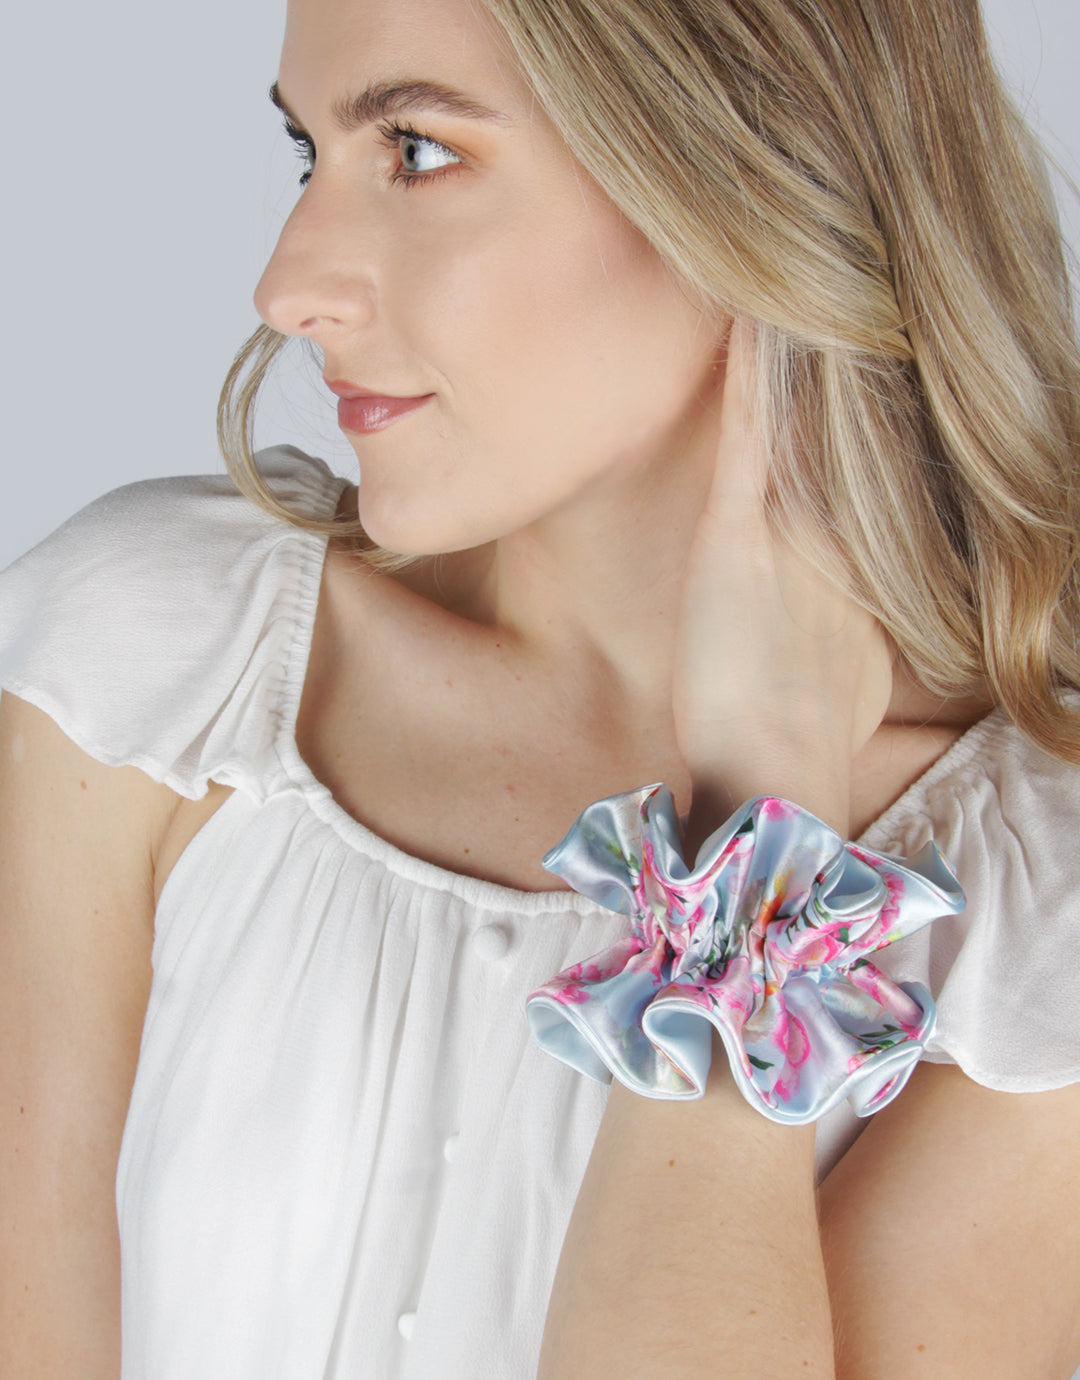 BANDED Women's Premium Hair Accessories - Peony Splendor - Reversible Scruffle Scrunchie